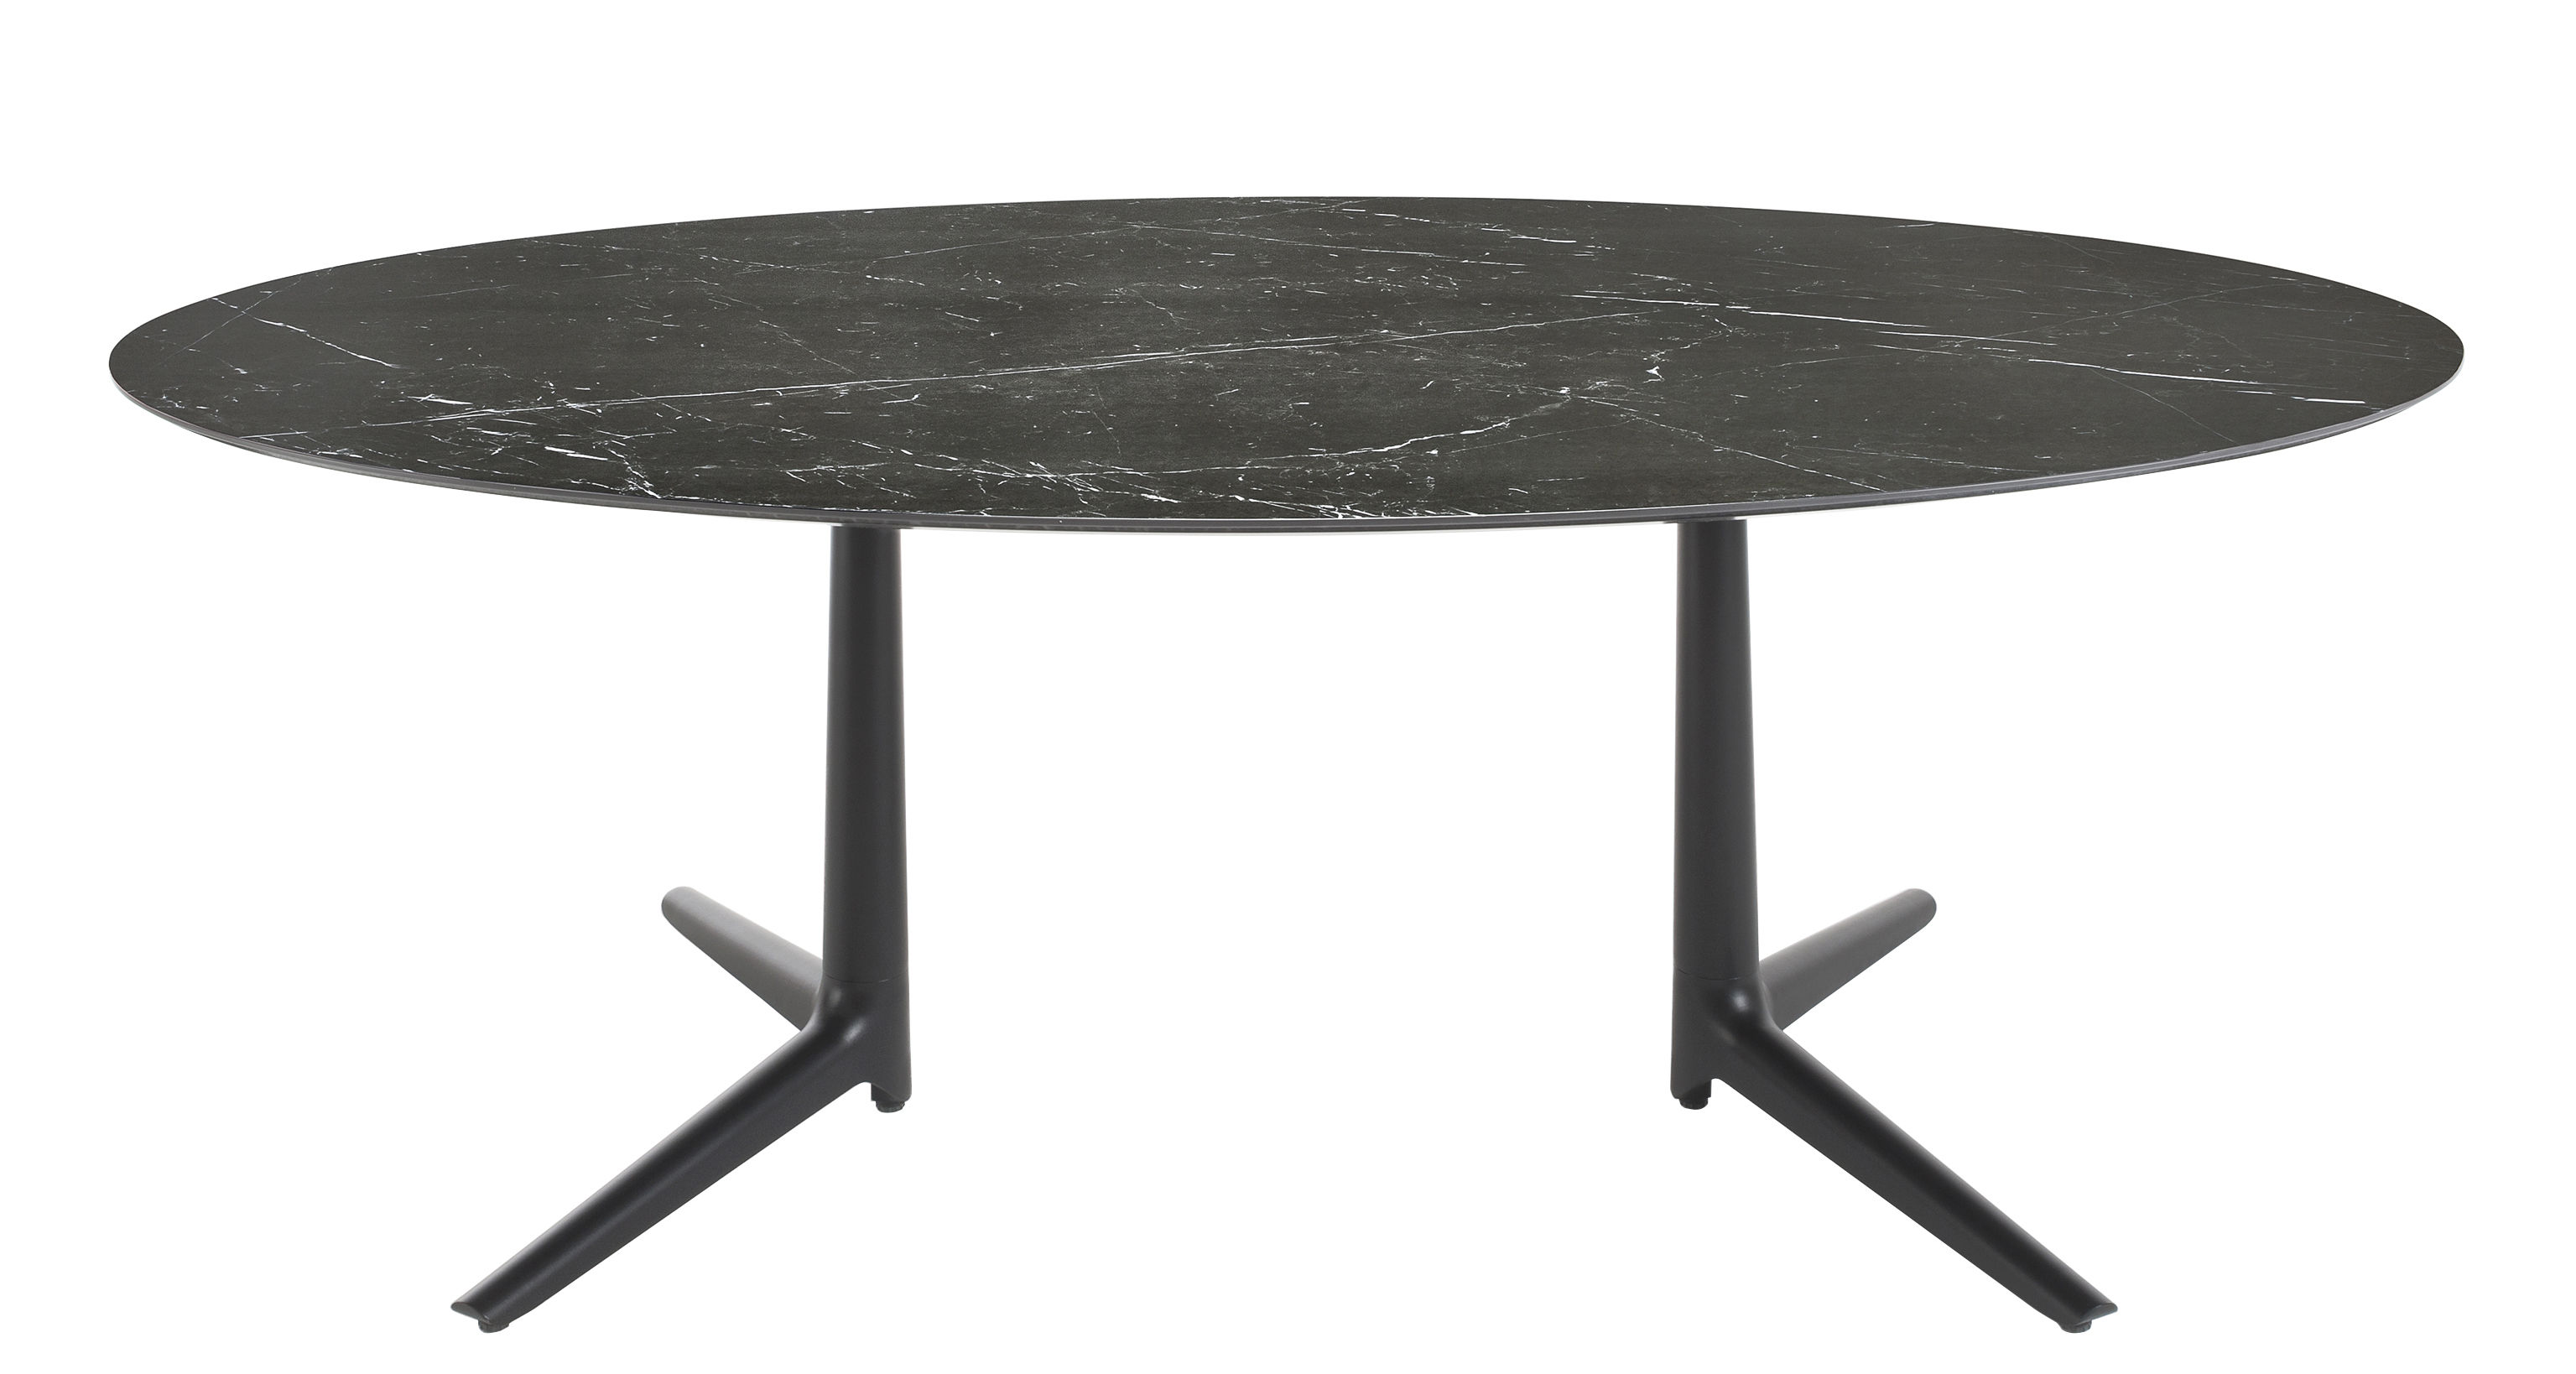 table multiplo indoor effet marbre 192 x 118 cm noir kartell made in design. Black Bedroom Furniture Sets. Home Design Ideas